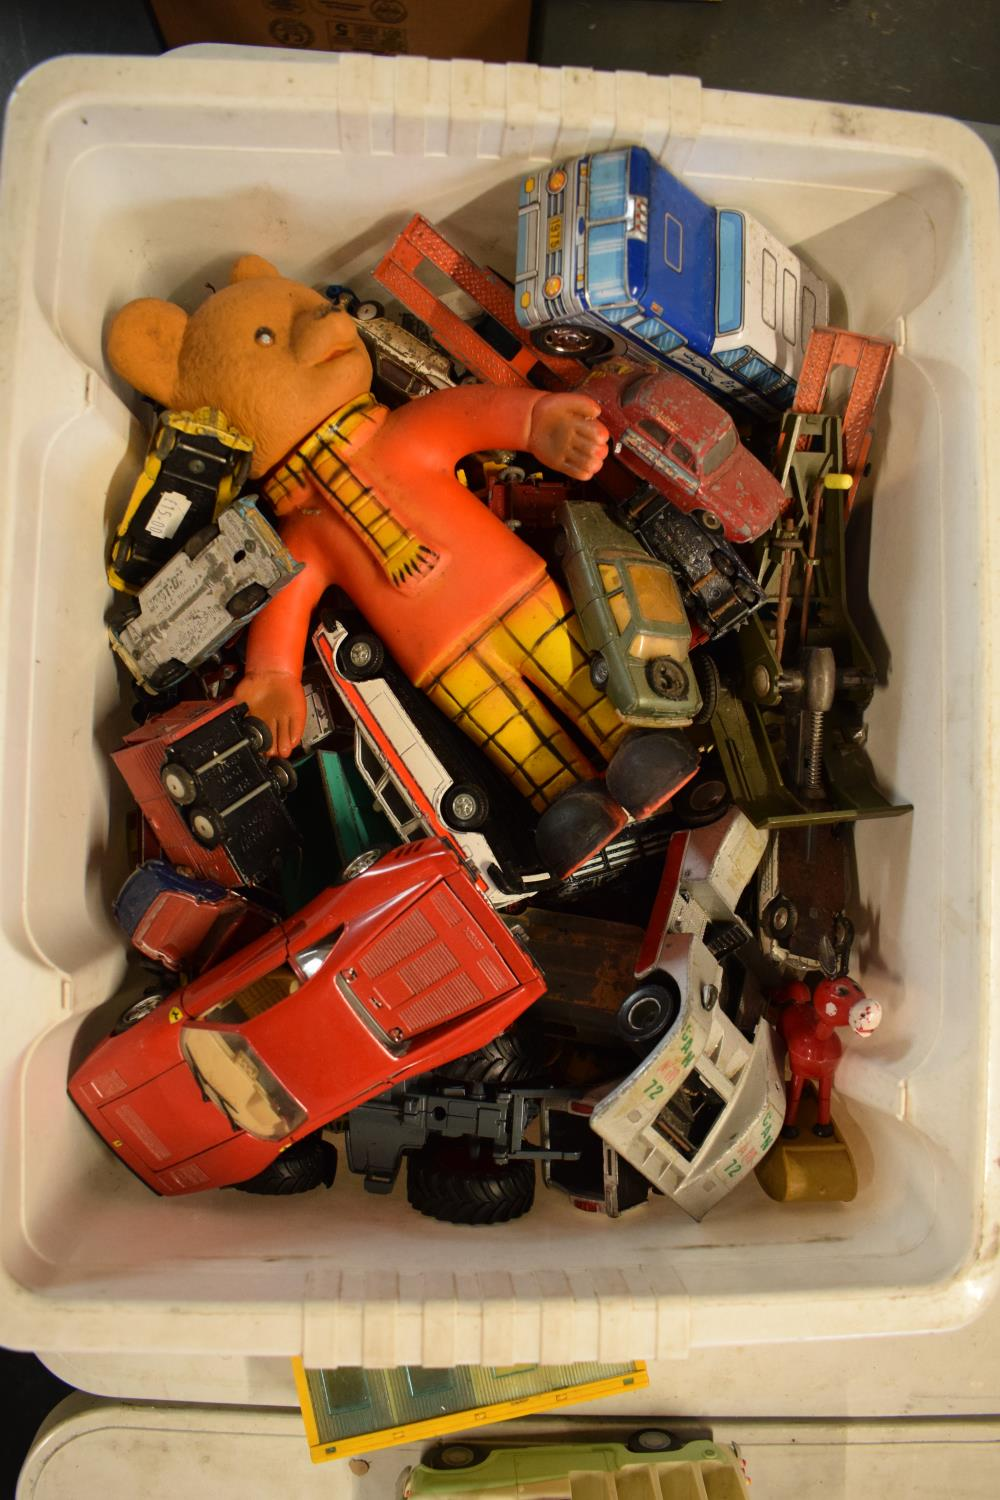 A large collection of childrens toy cars and trucks etc to include various makes Corgi, Scammel,